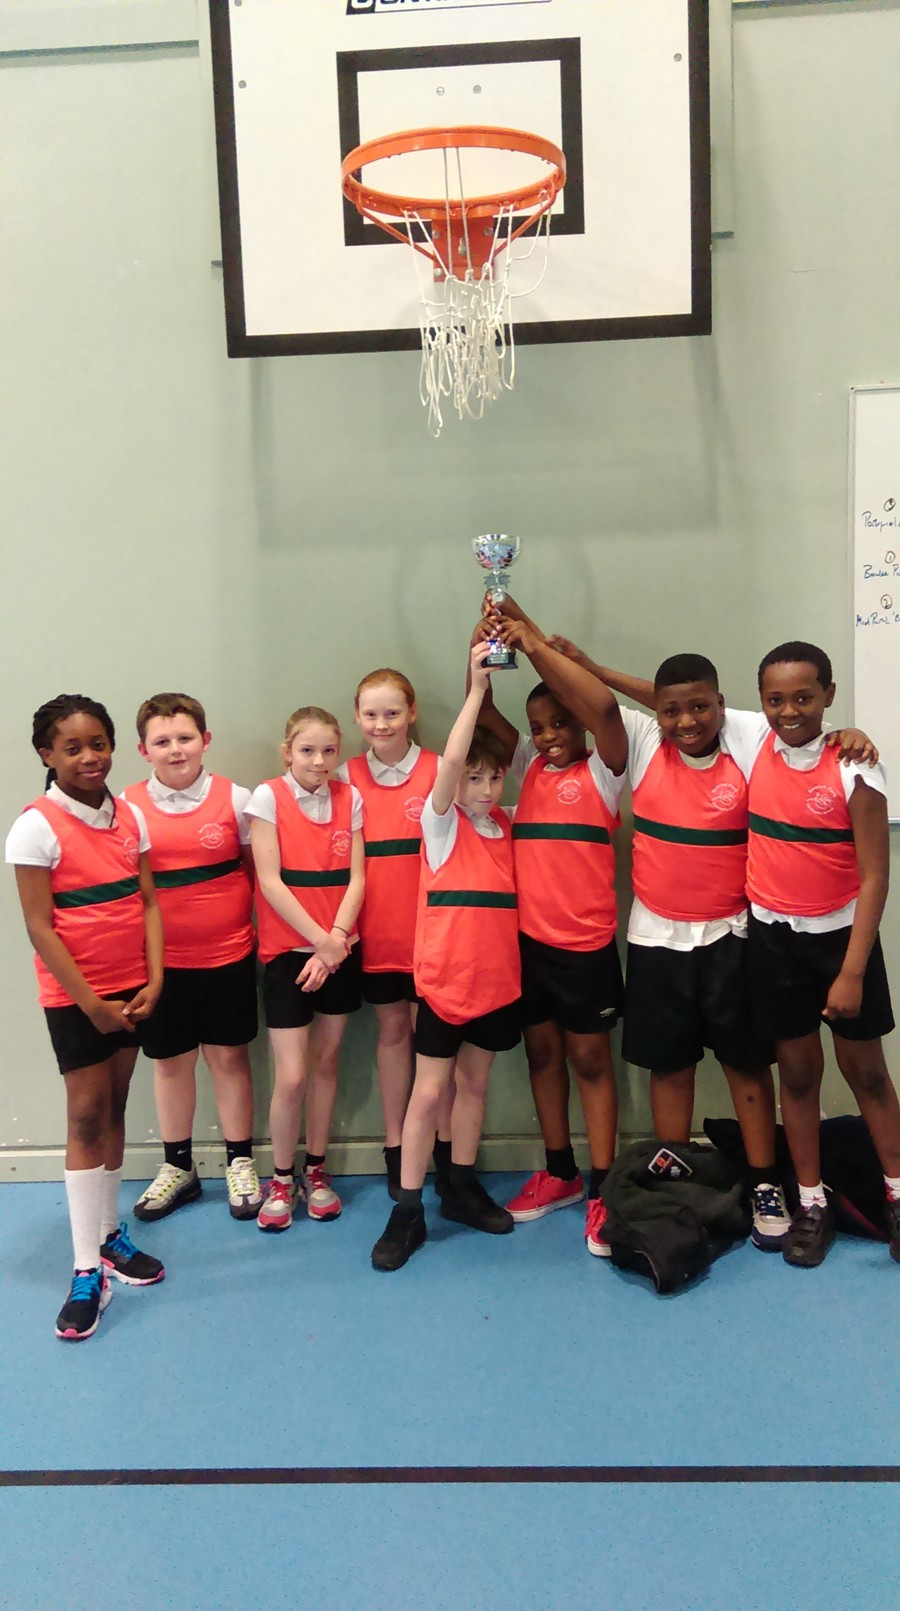 Congratulations to our basketball team on winning the St Annes cup